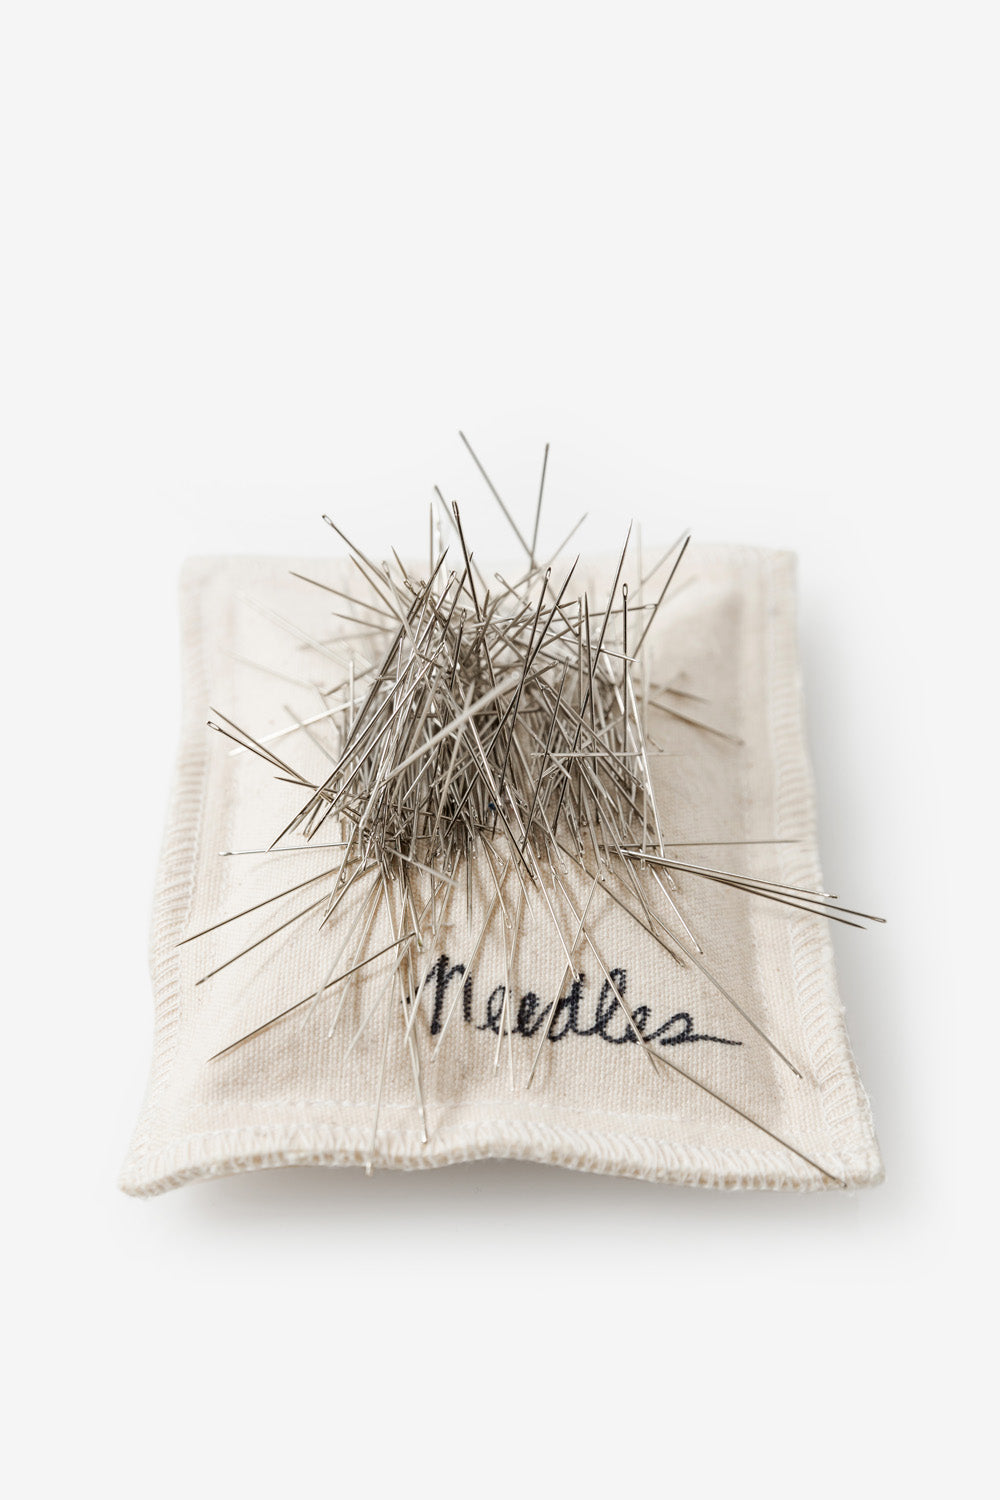 The School of Making Sewing Needles for Makers on Magnetic Pin Cushion